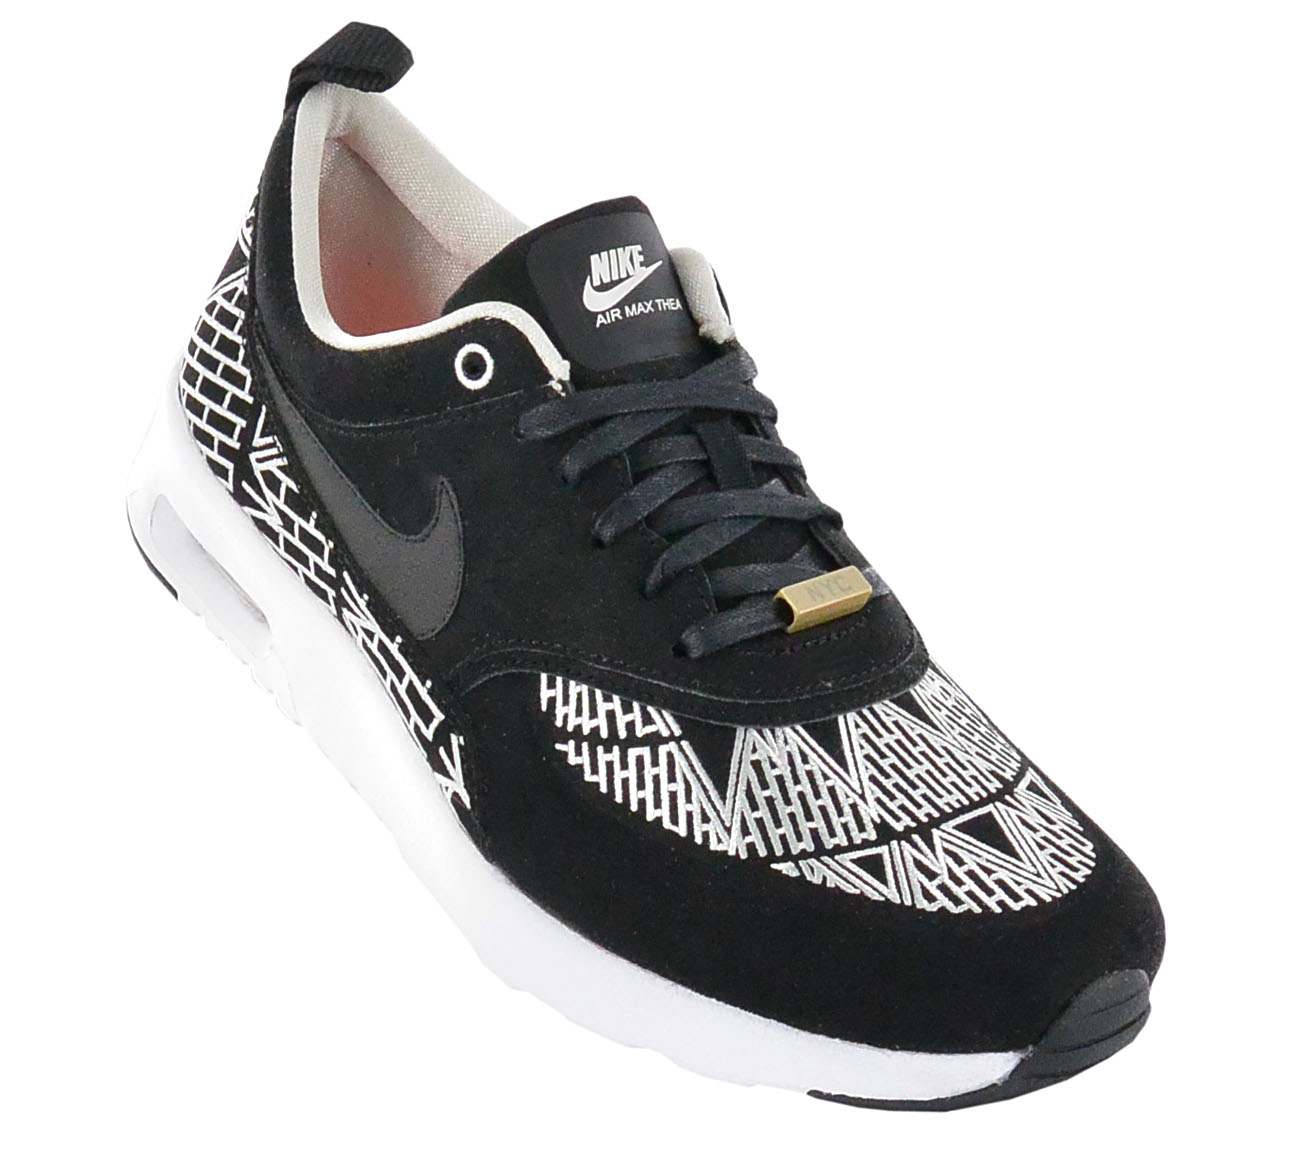 énorme réduction ac269 3dcd5 Details about Nike Air Max Thea Qs New York Shoes Women's Sneakers Special  Model Sneakers